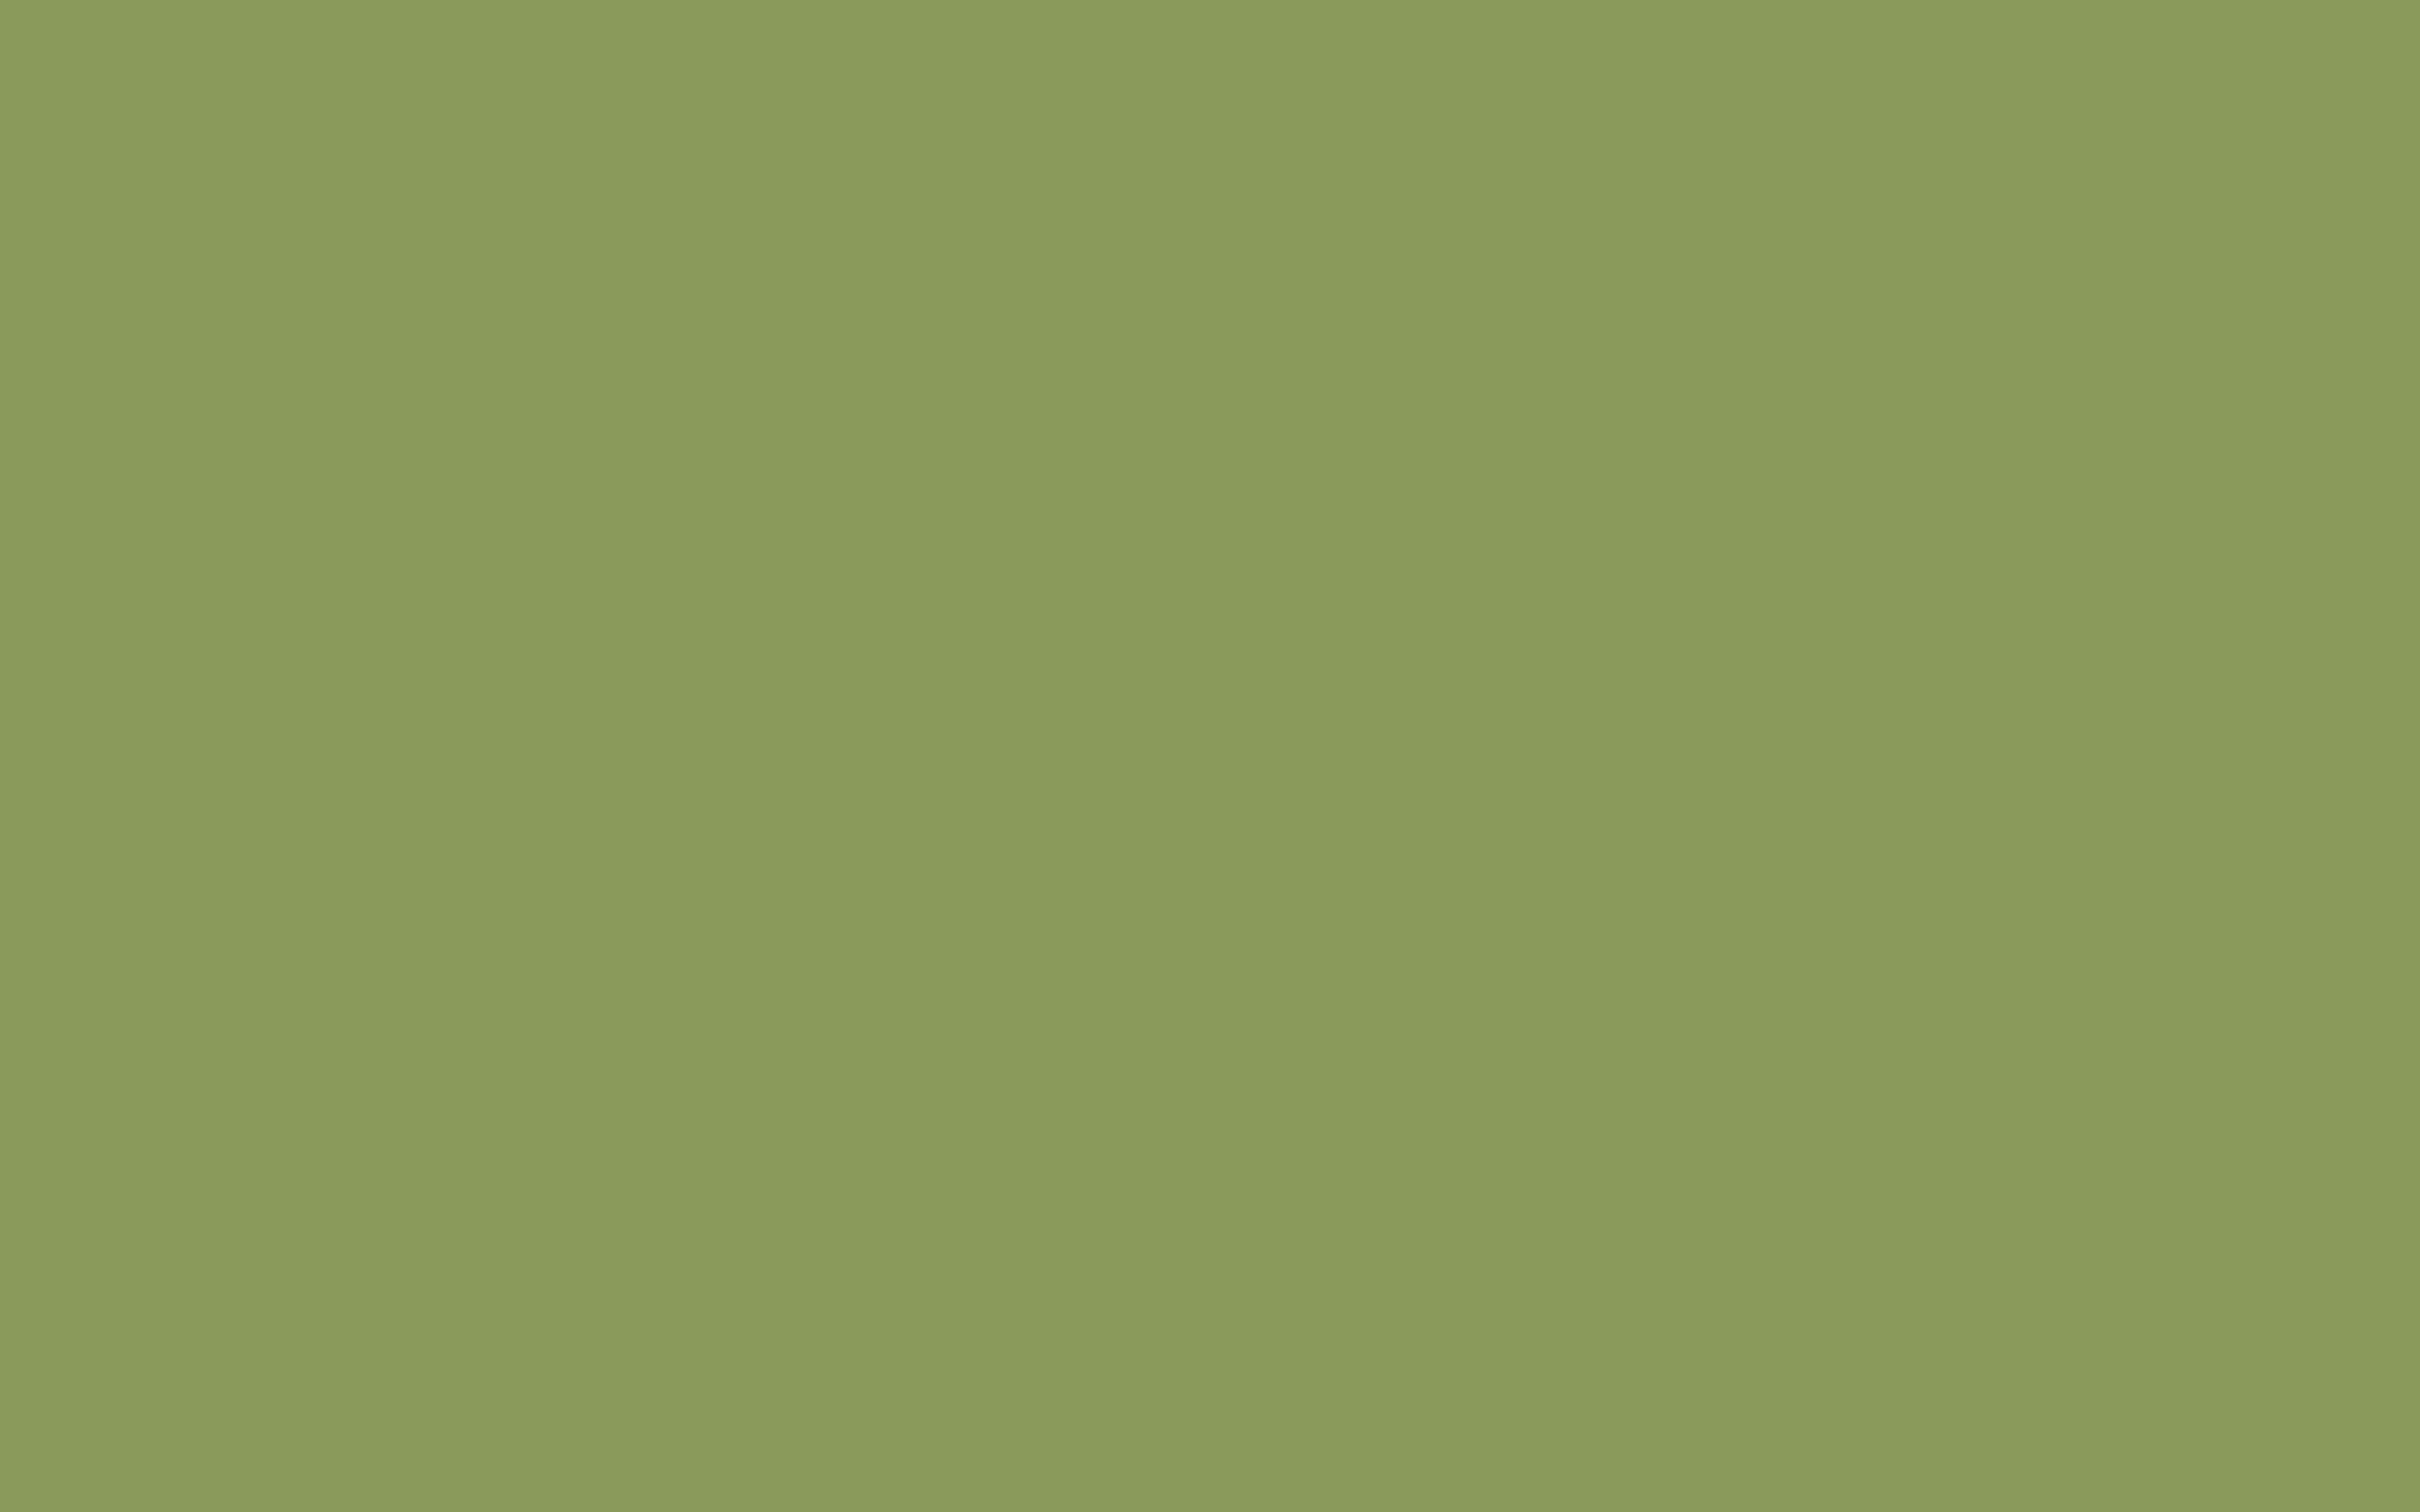 2880x1800 Moss Green Solid Color Background